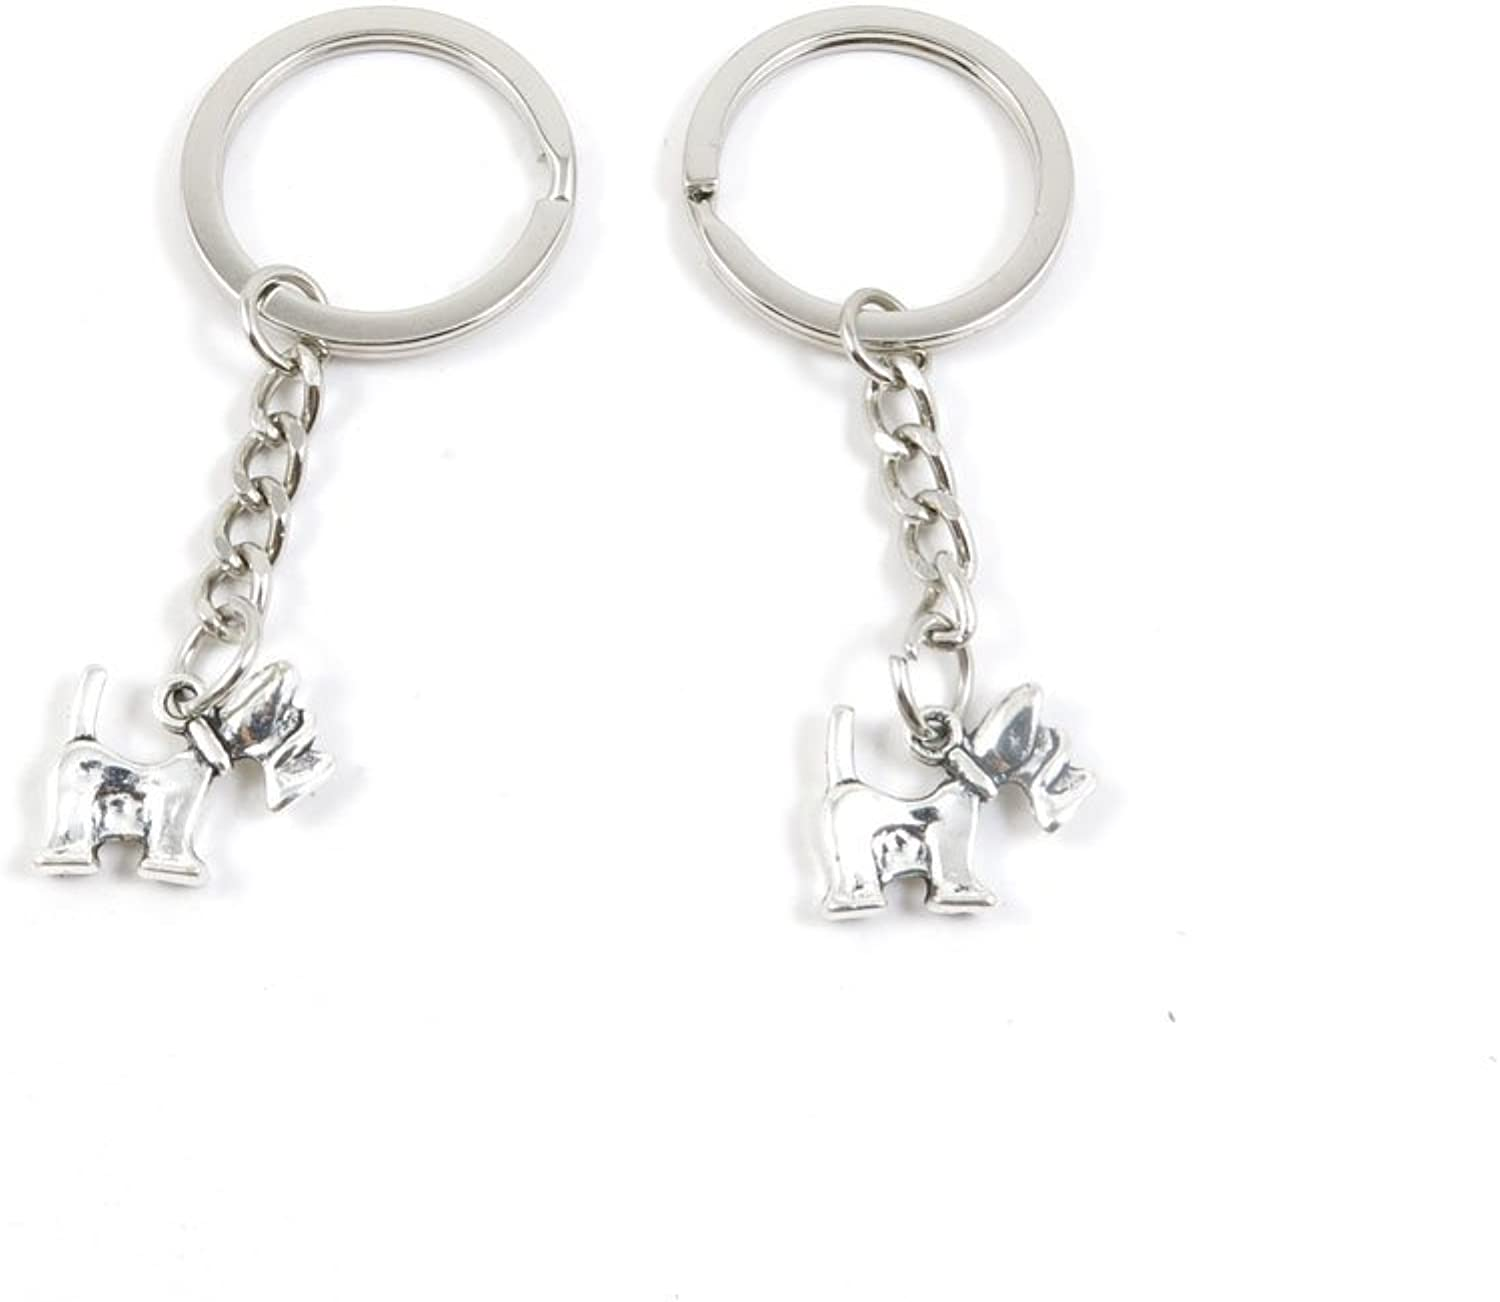 210 Pieces Fashion Jewelry Keyring Keychain Door Car Key Tag Ring Chain Supplier Supply Wholesale Bulk Lots E2LJ9 Dog Puppy